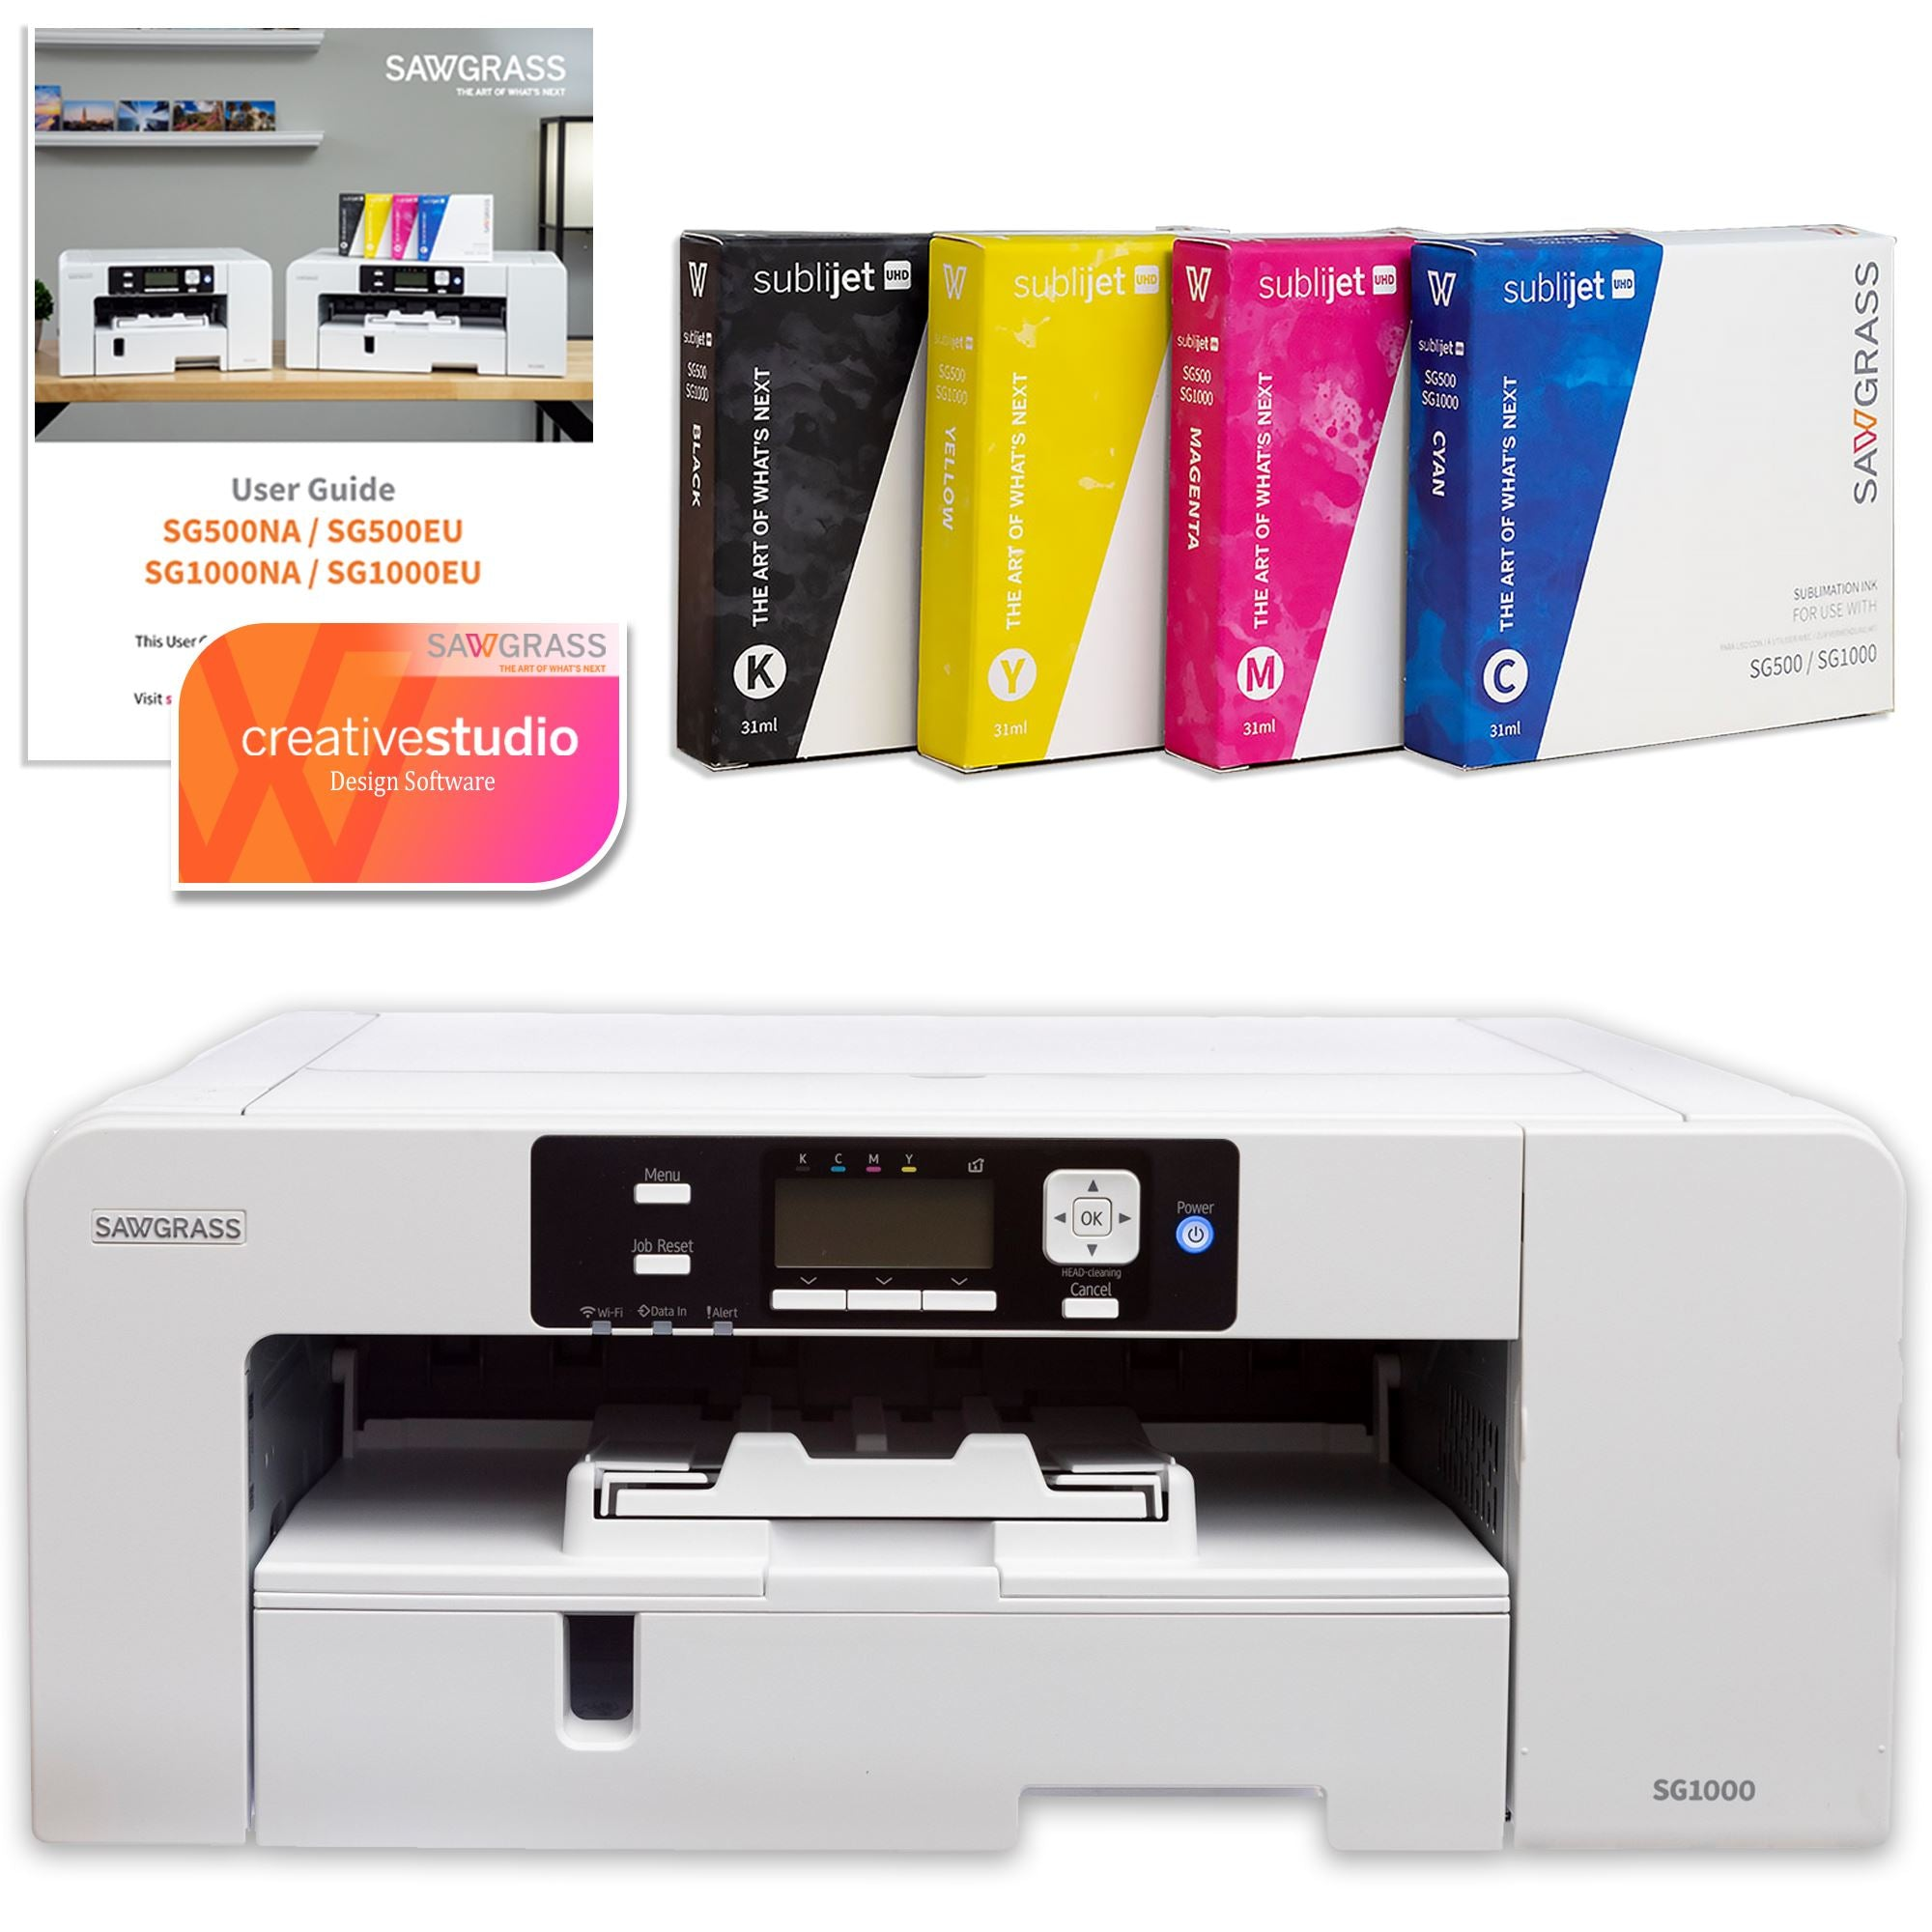 Best Sawgrass sublimation printer for small business: Sawgrass Virtuoso SG1000